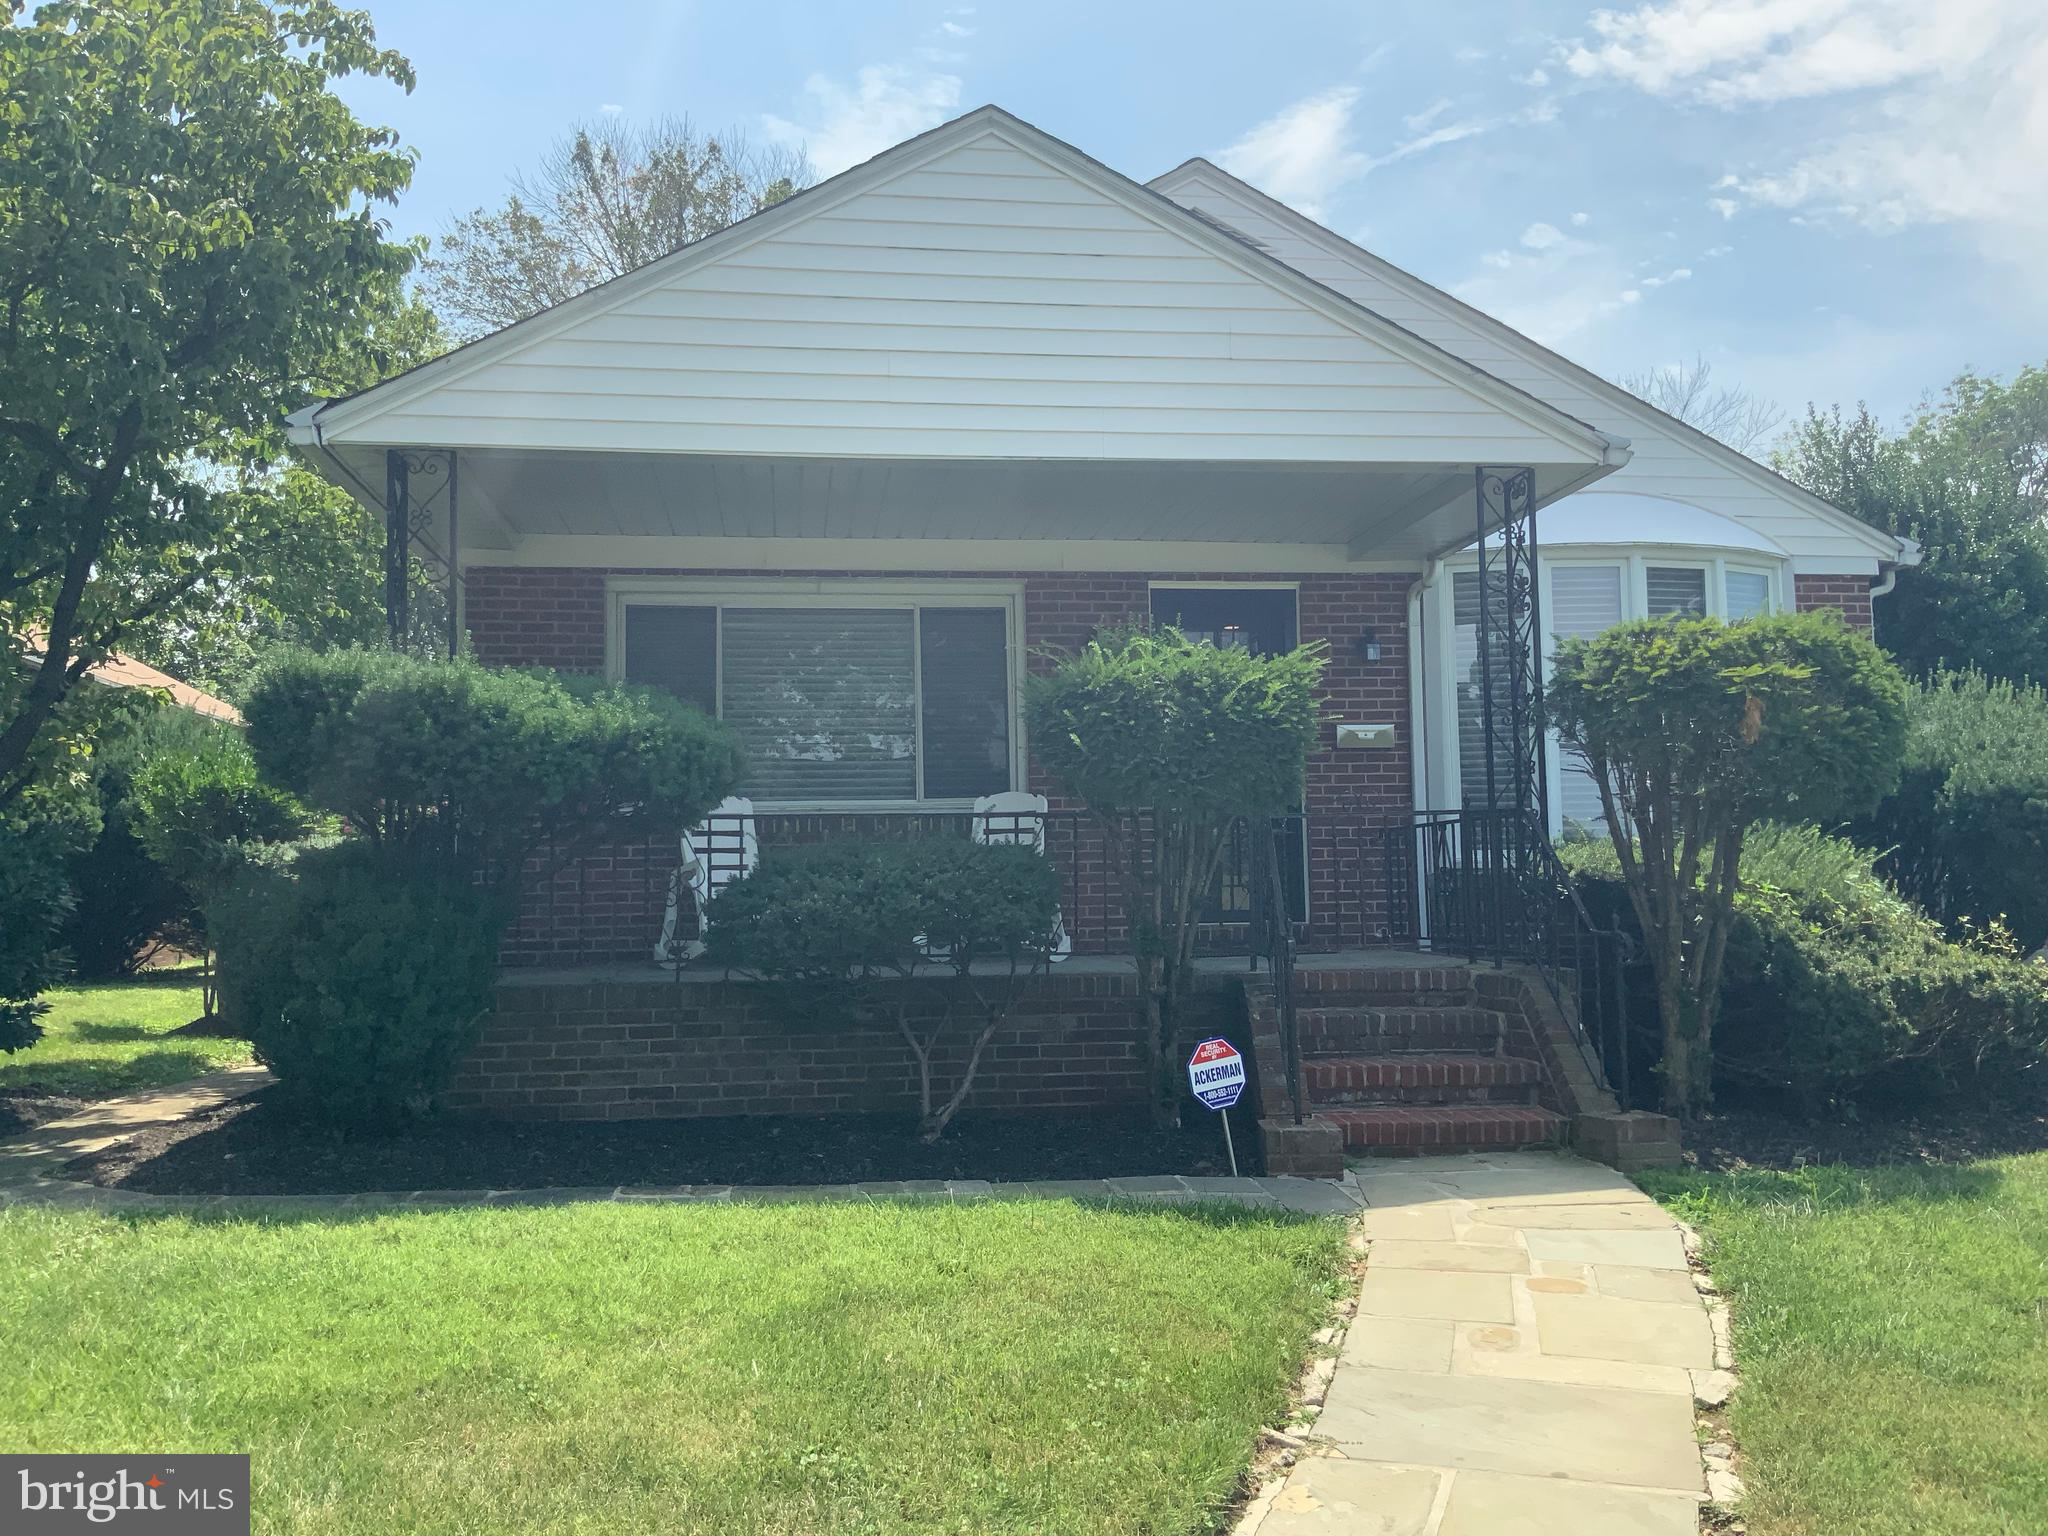 4713 W FOREST PARK AVENUE, BALTIMORE, MD 21207